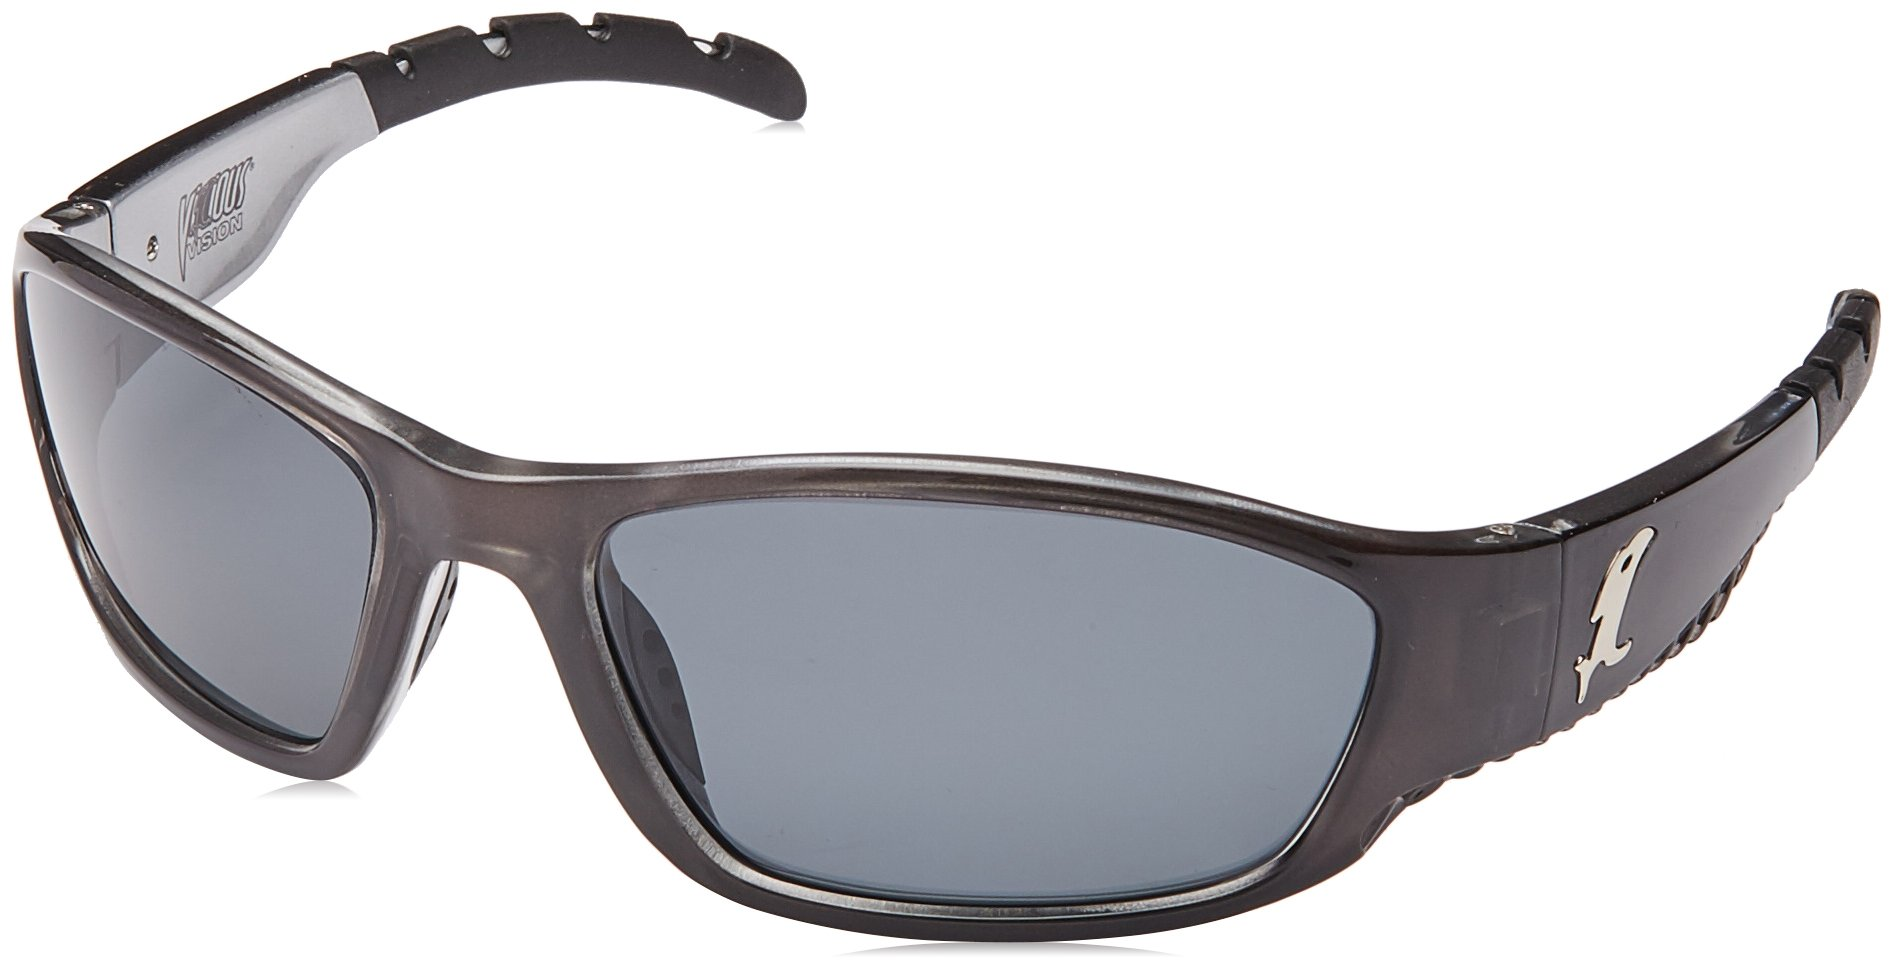 Vicious Vision Venom Pro Series Sunglasses, Smoke Grey by Vicious Vision (Image #1)